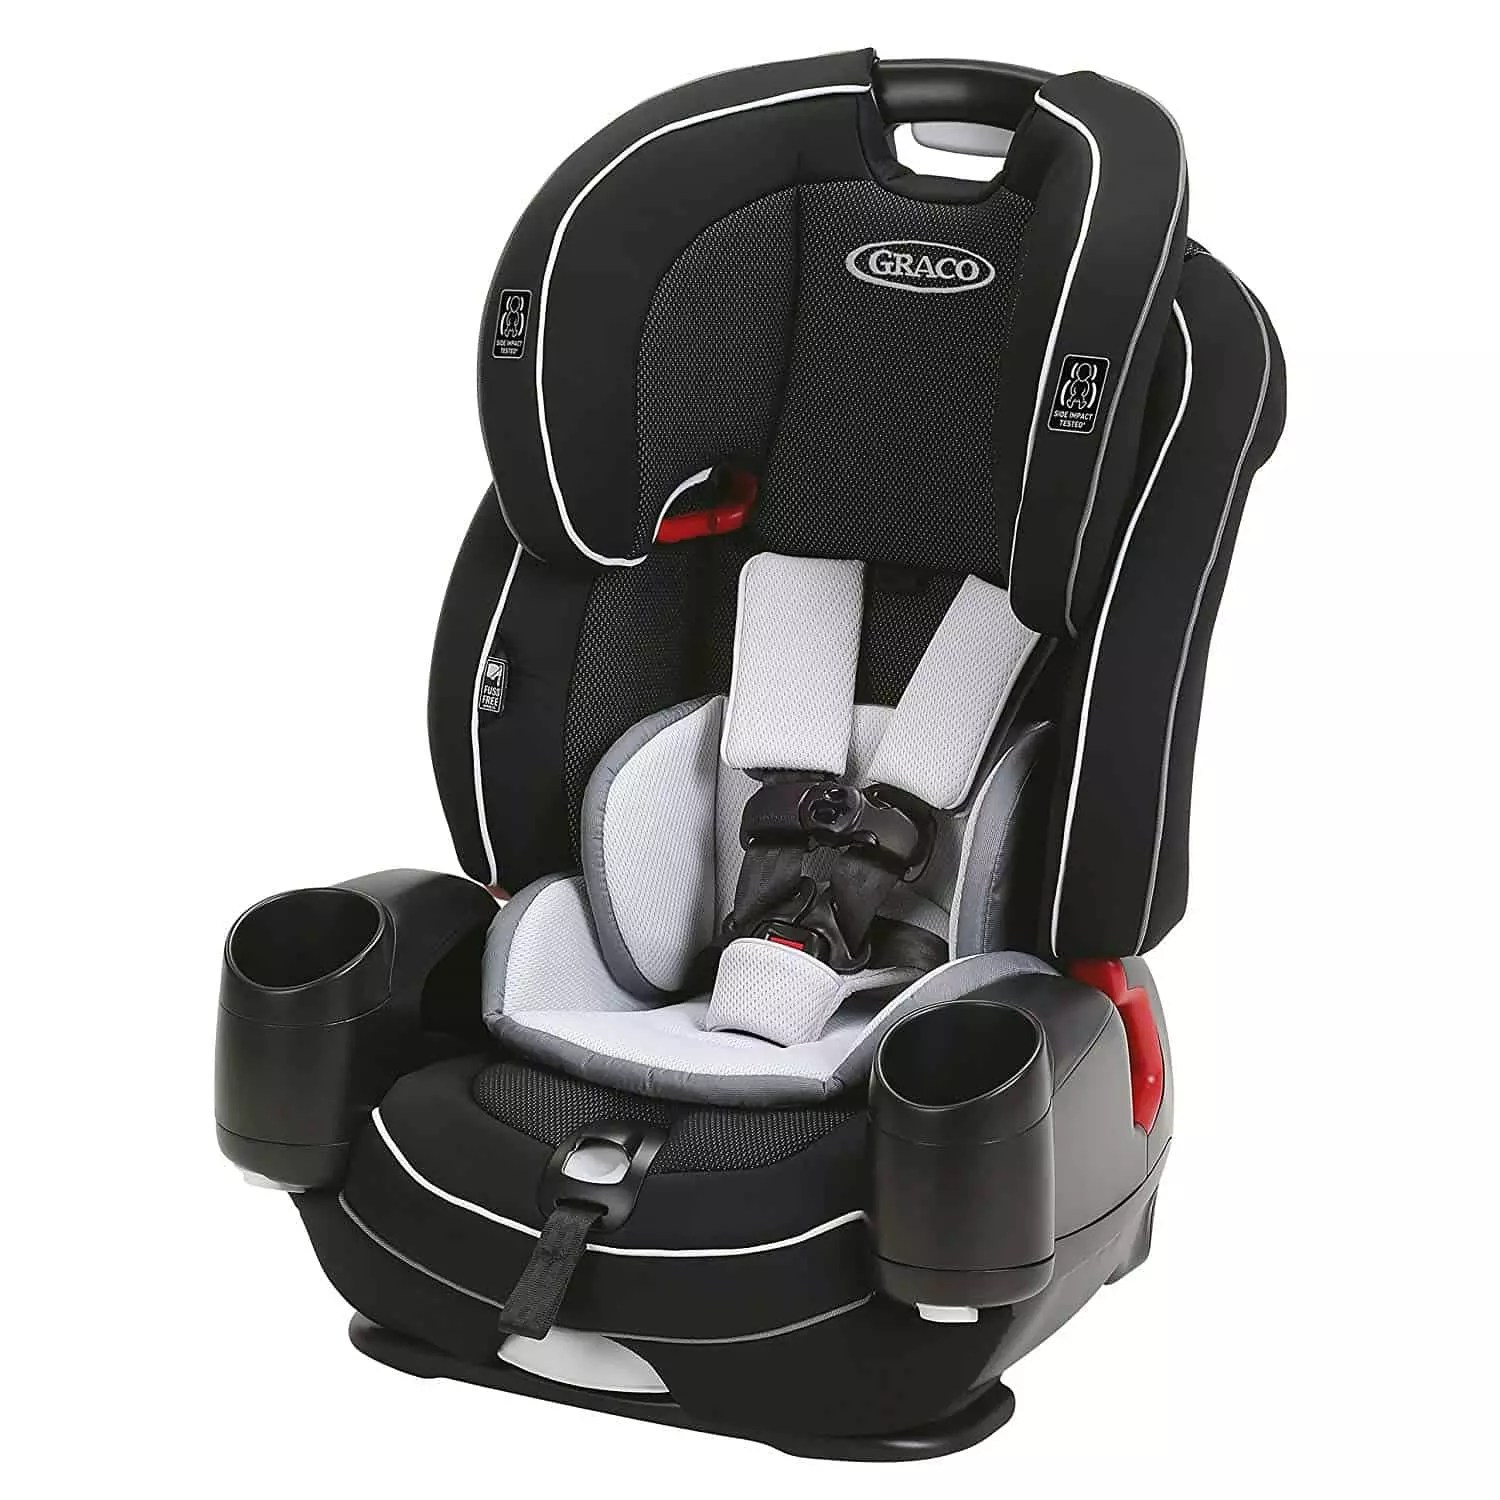 Booster Car Seat Baby Bargains